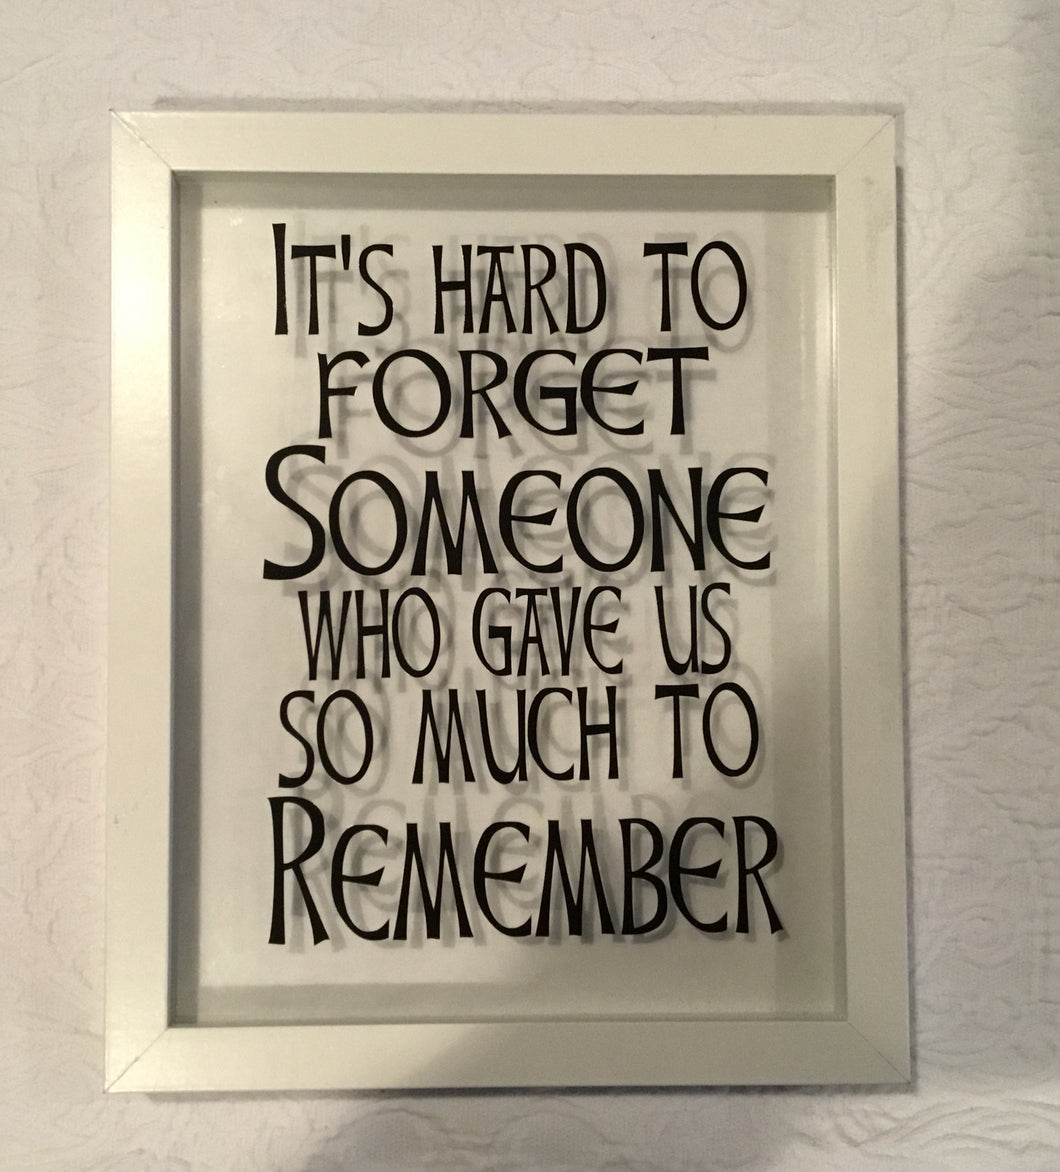 It's Hard to Forget Someome Shadow Box Frame